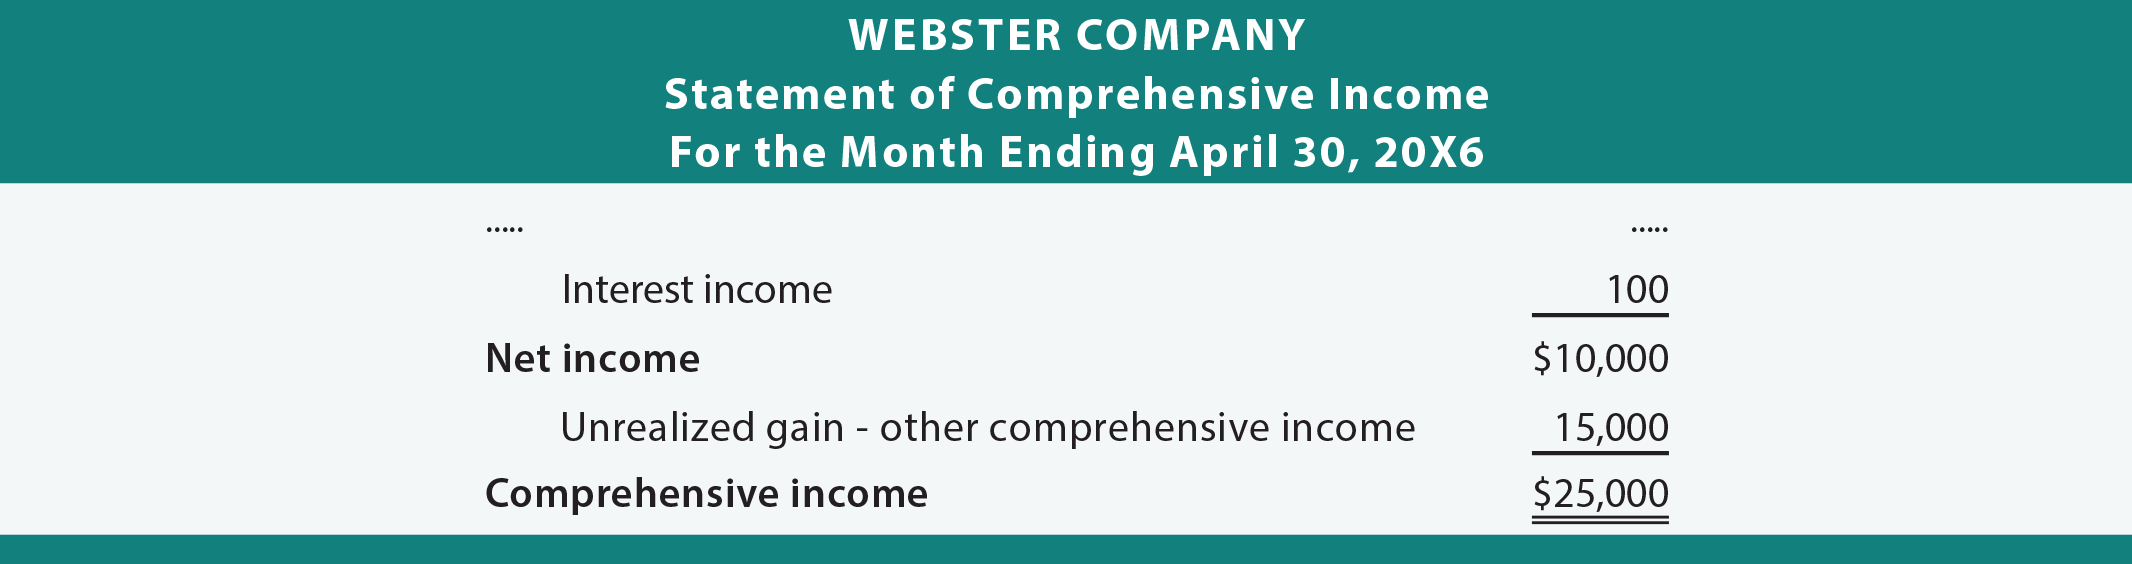 Webster Income Statement